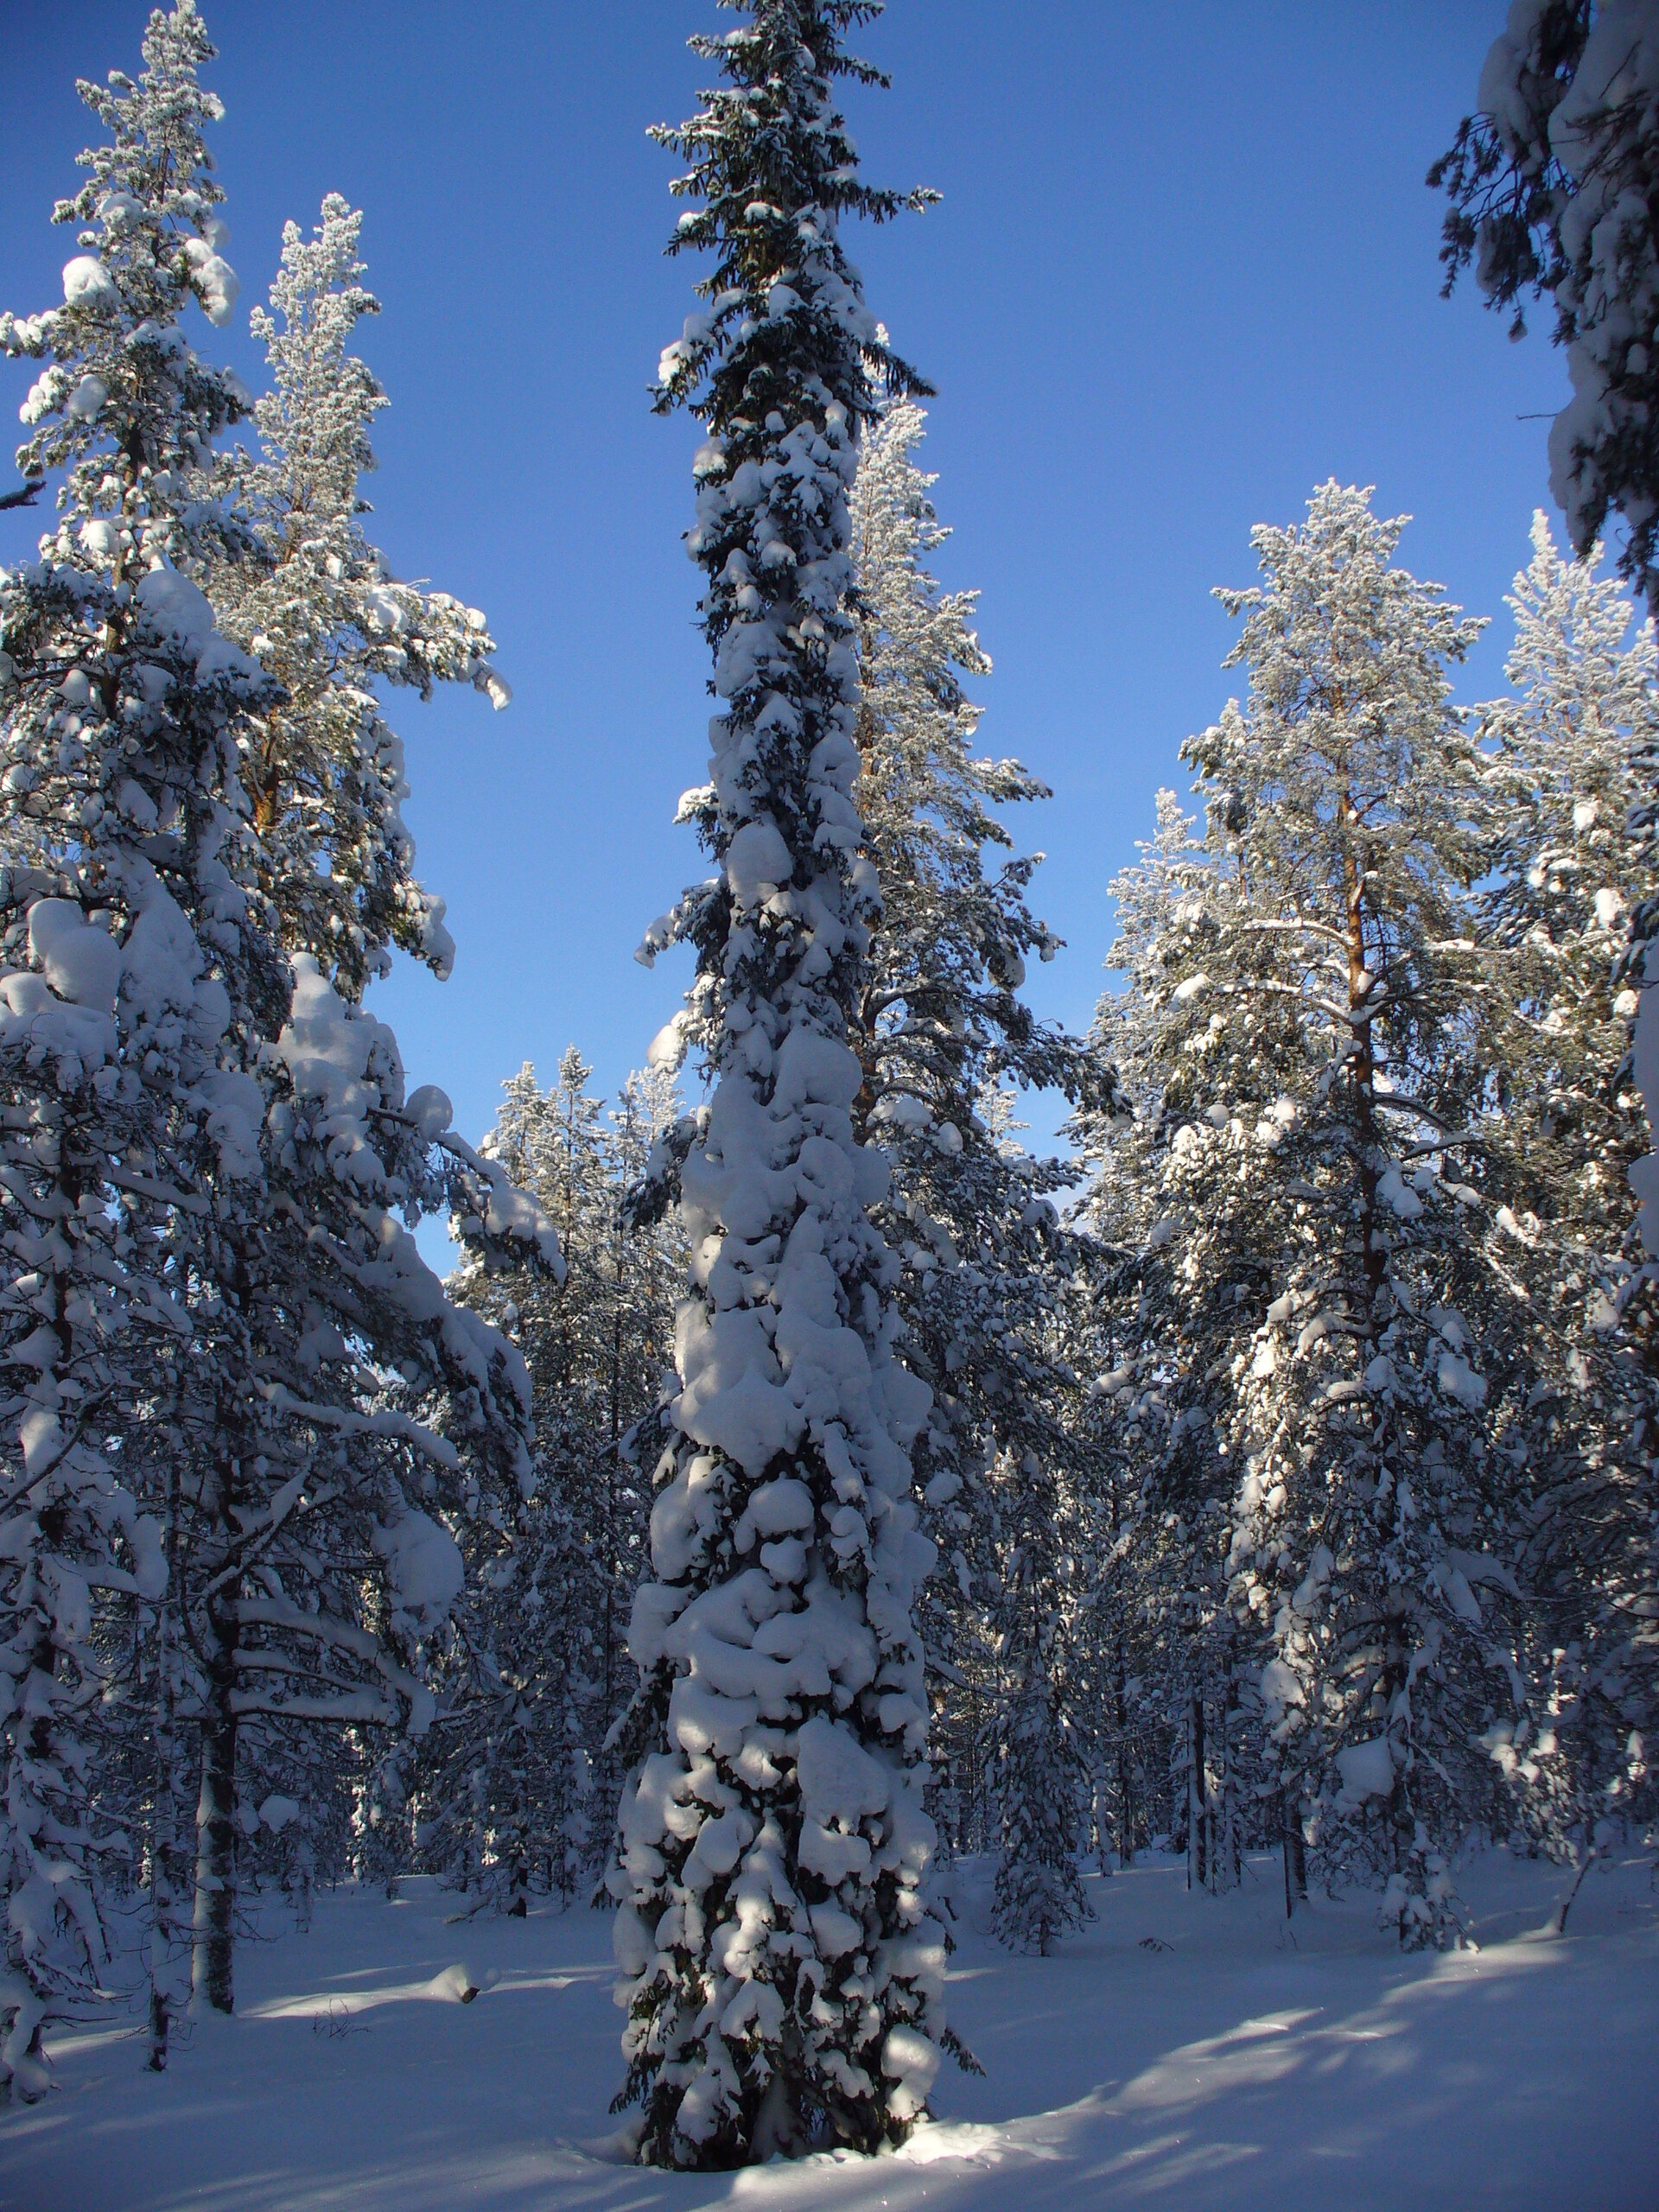 Snow-covered boreal forest